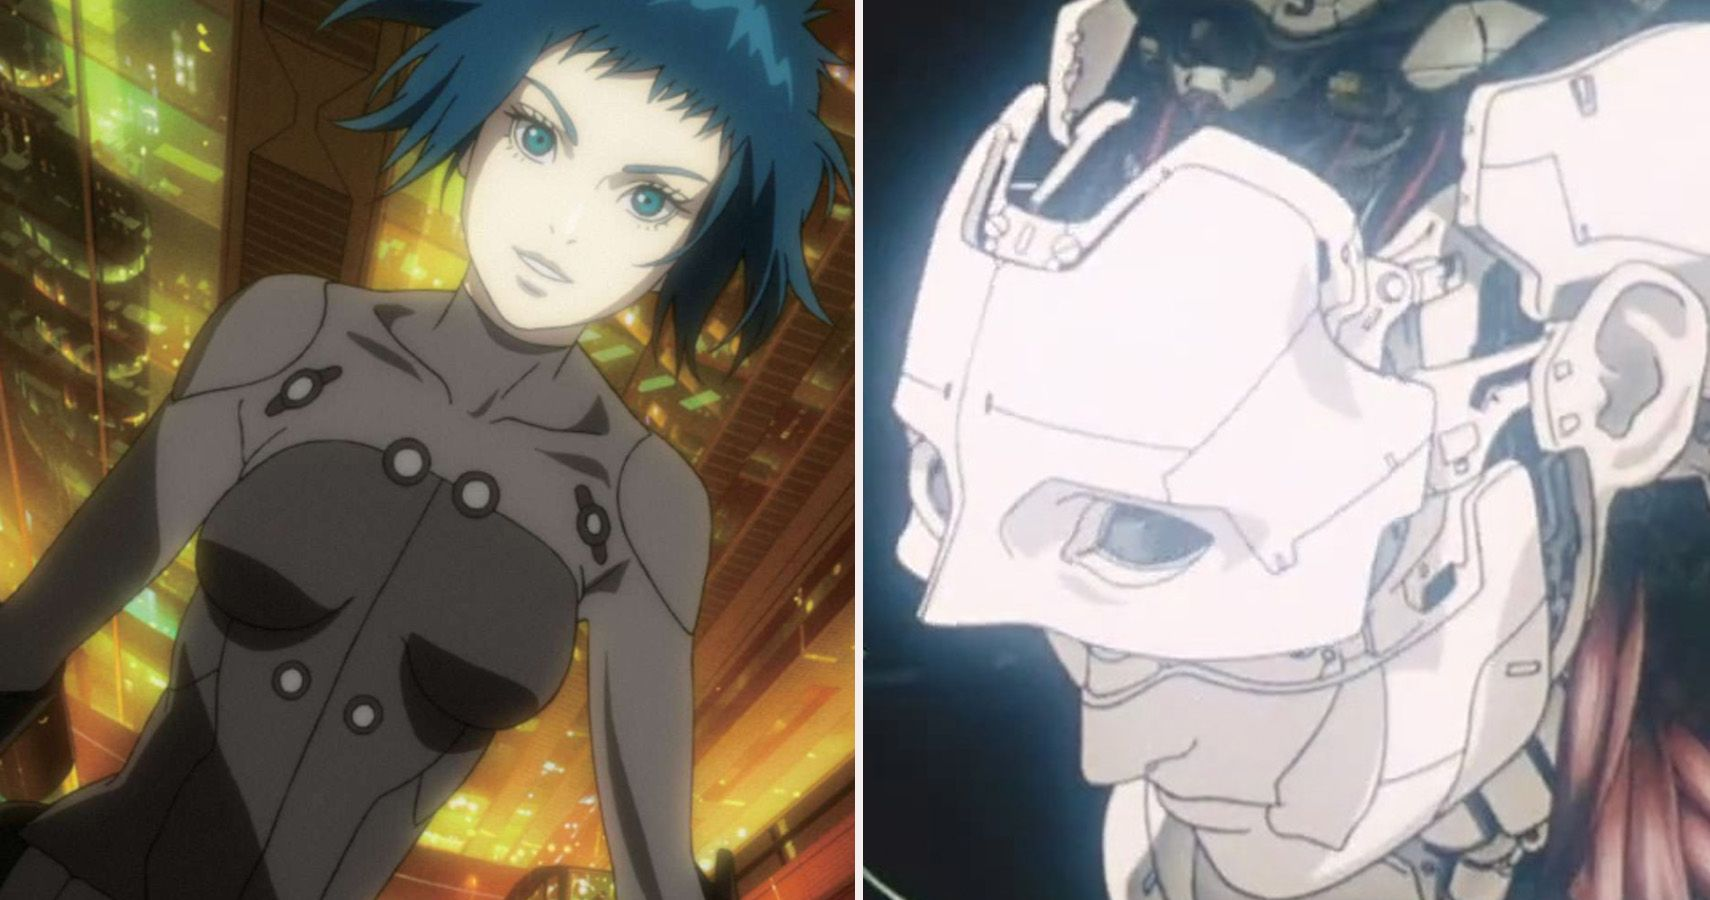 Ghost In The Shell 10 Differences Between The Anime And The Manga